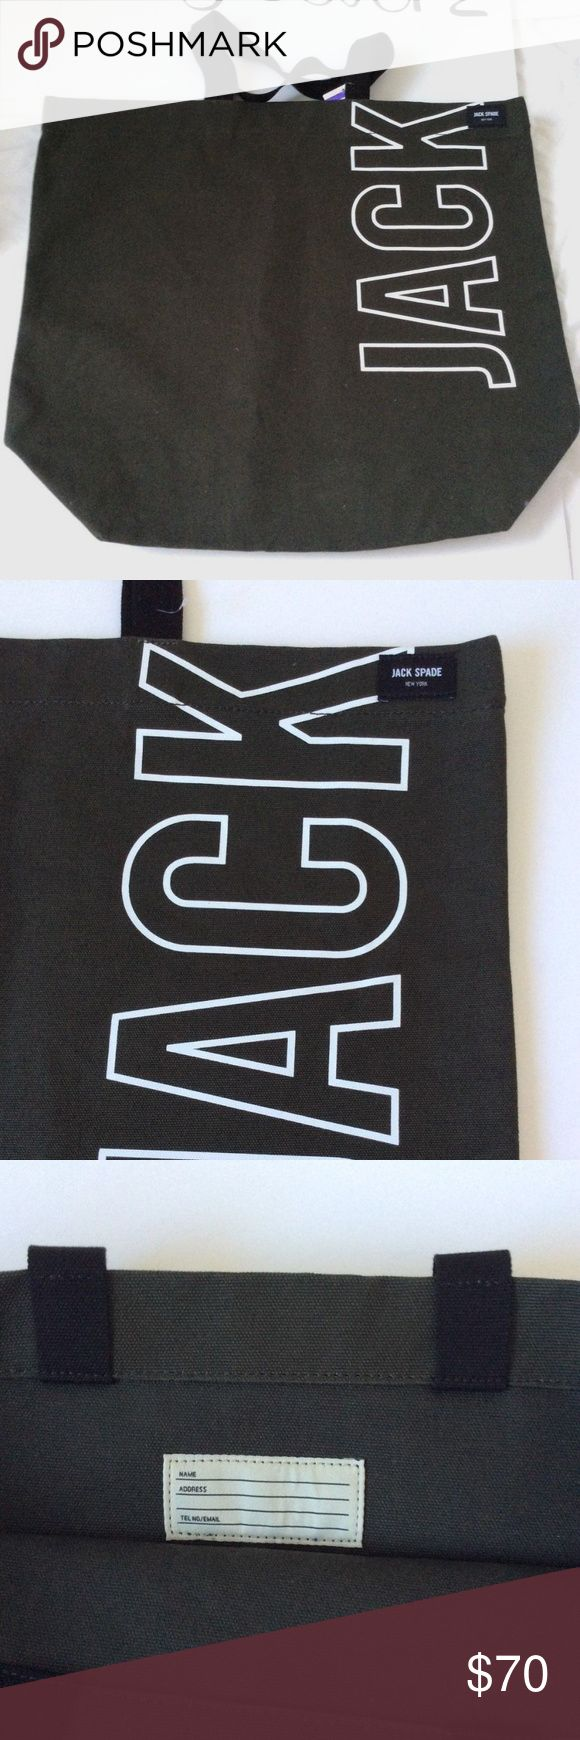 Jack Spade Men's Cotton Basic Canvas Tote Bag 100% Cotton  17 Inches High  20 Inches Wide  The wax waterproofing treatment was originally developed for sailfish  It has a jack logo written on the side  Soft canvas material Jack Spade Bags Totes